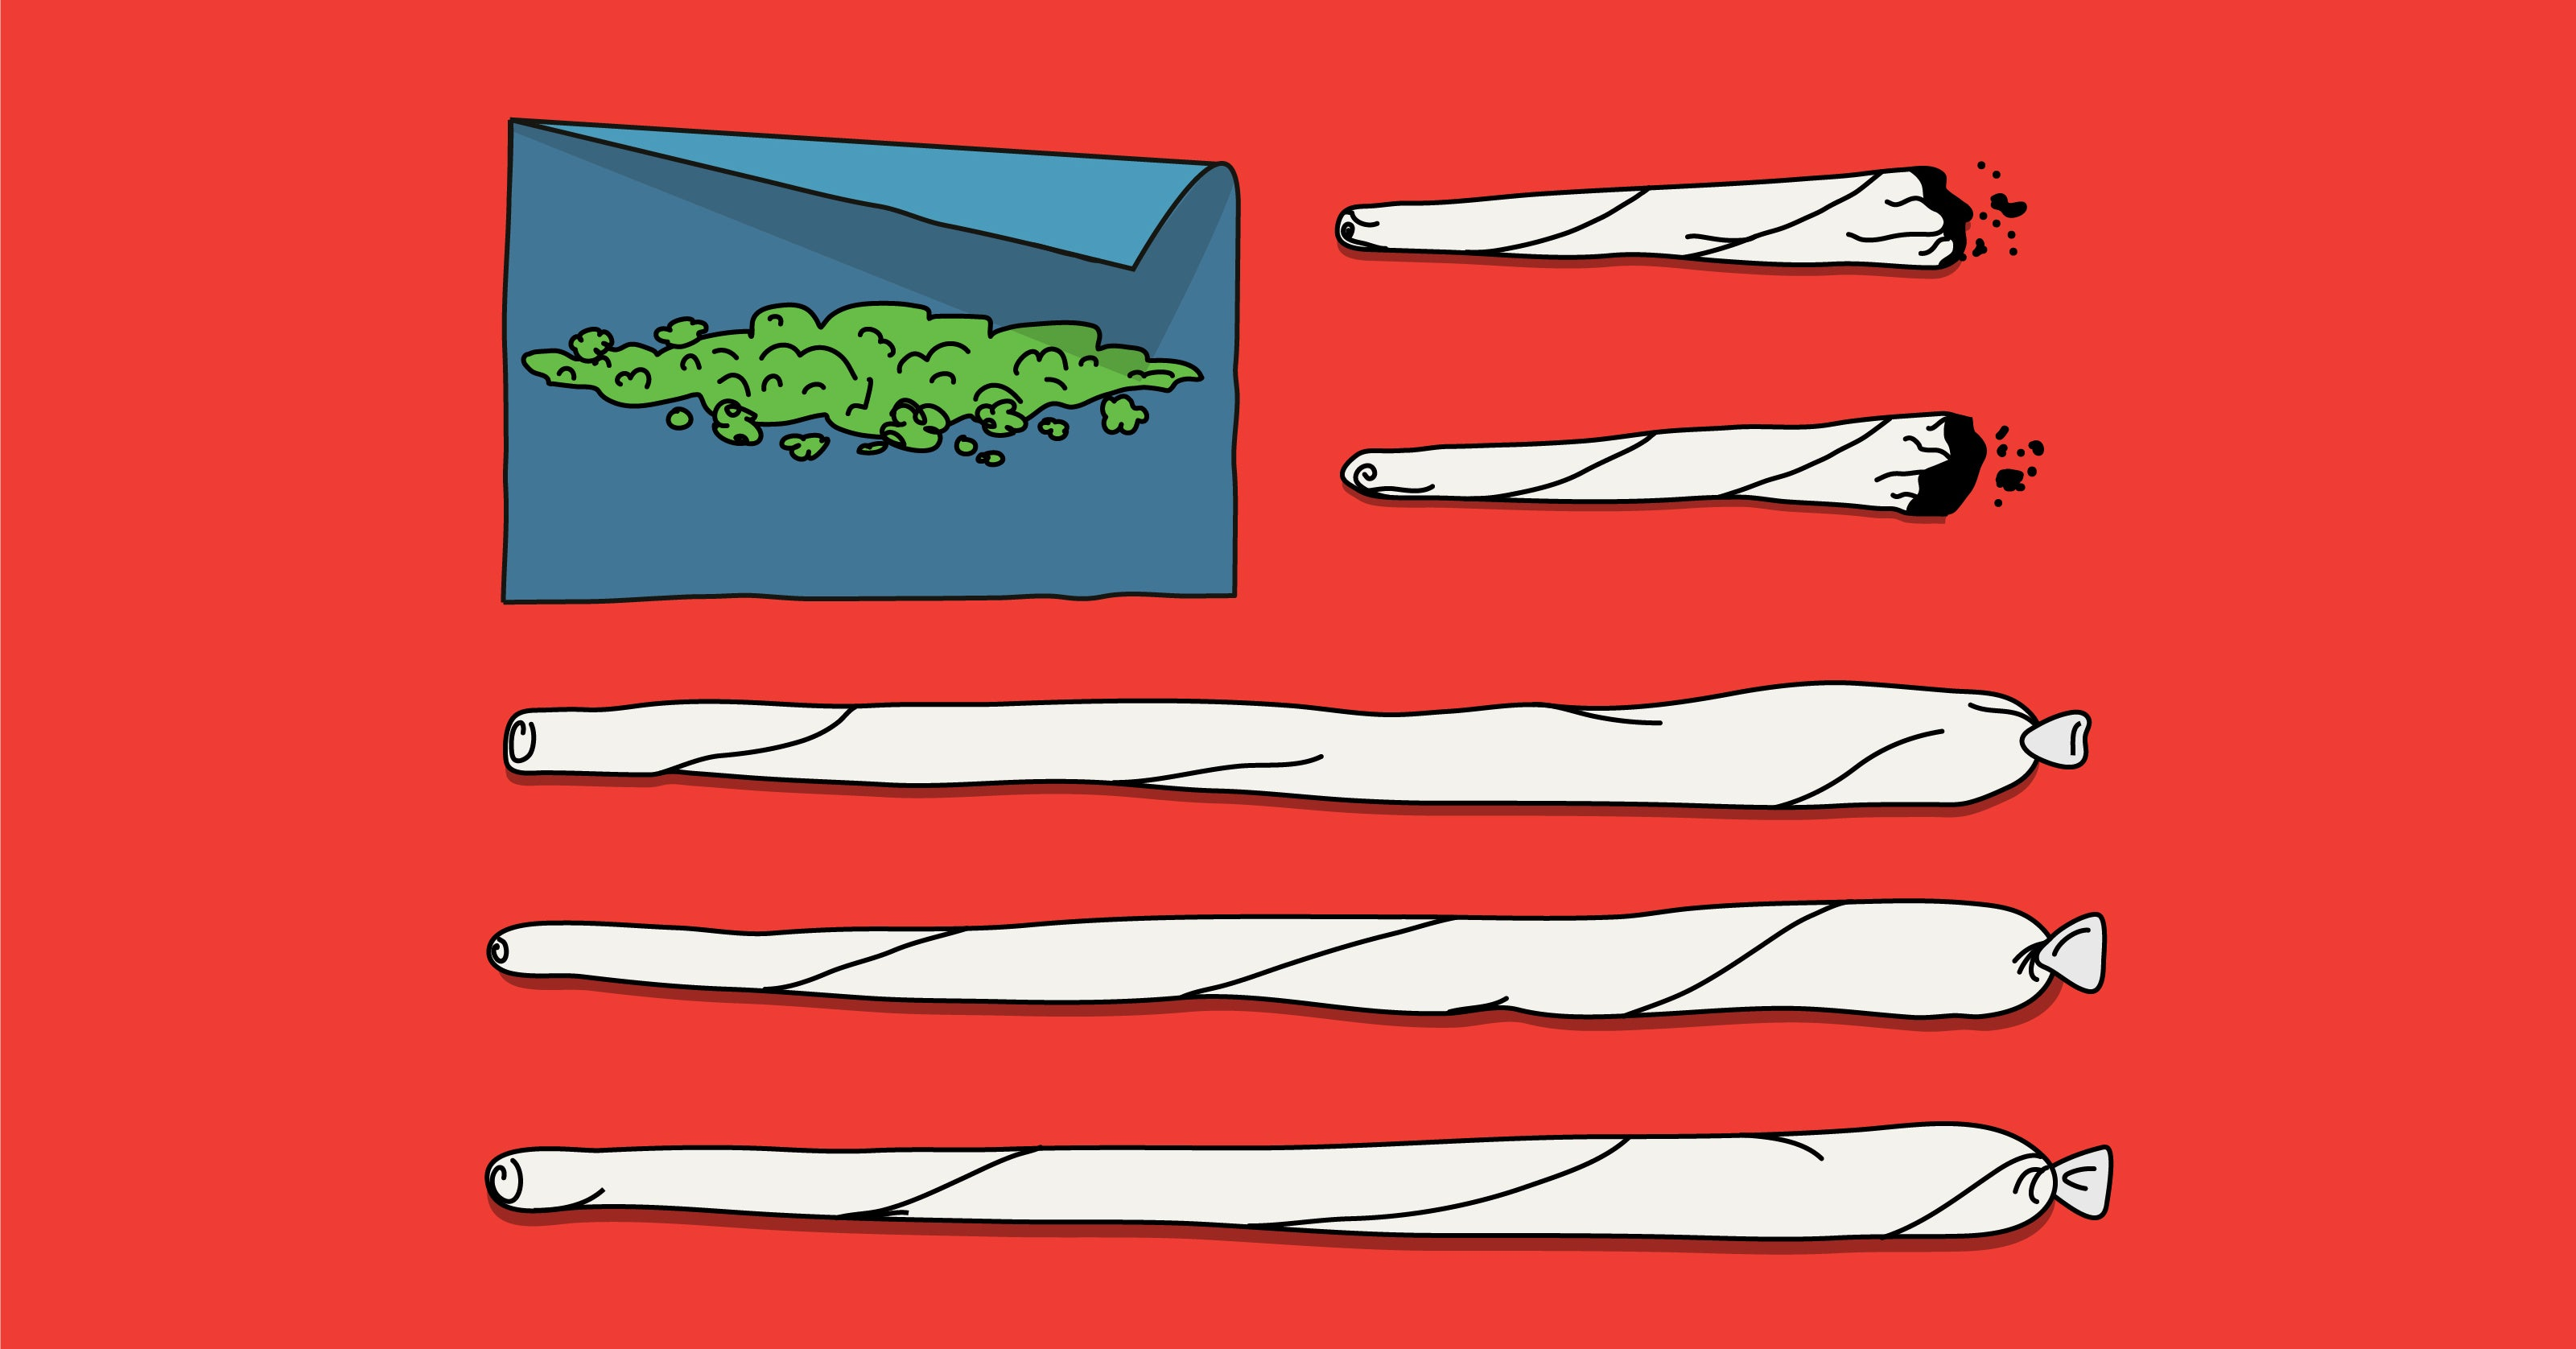 More Than A Quarter Of Americans Use Marijuana And Are Cool With A President Who Has Smoked, Major National Poll Finds